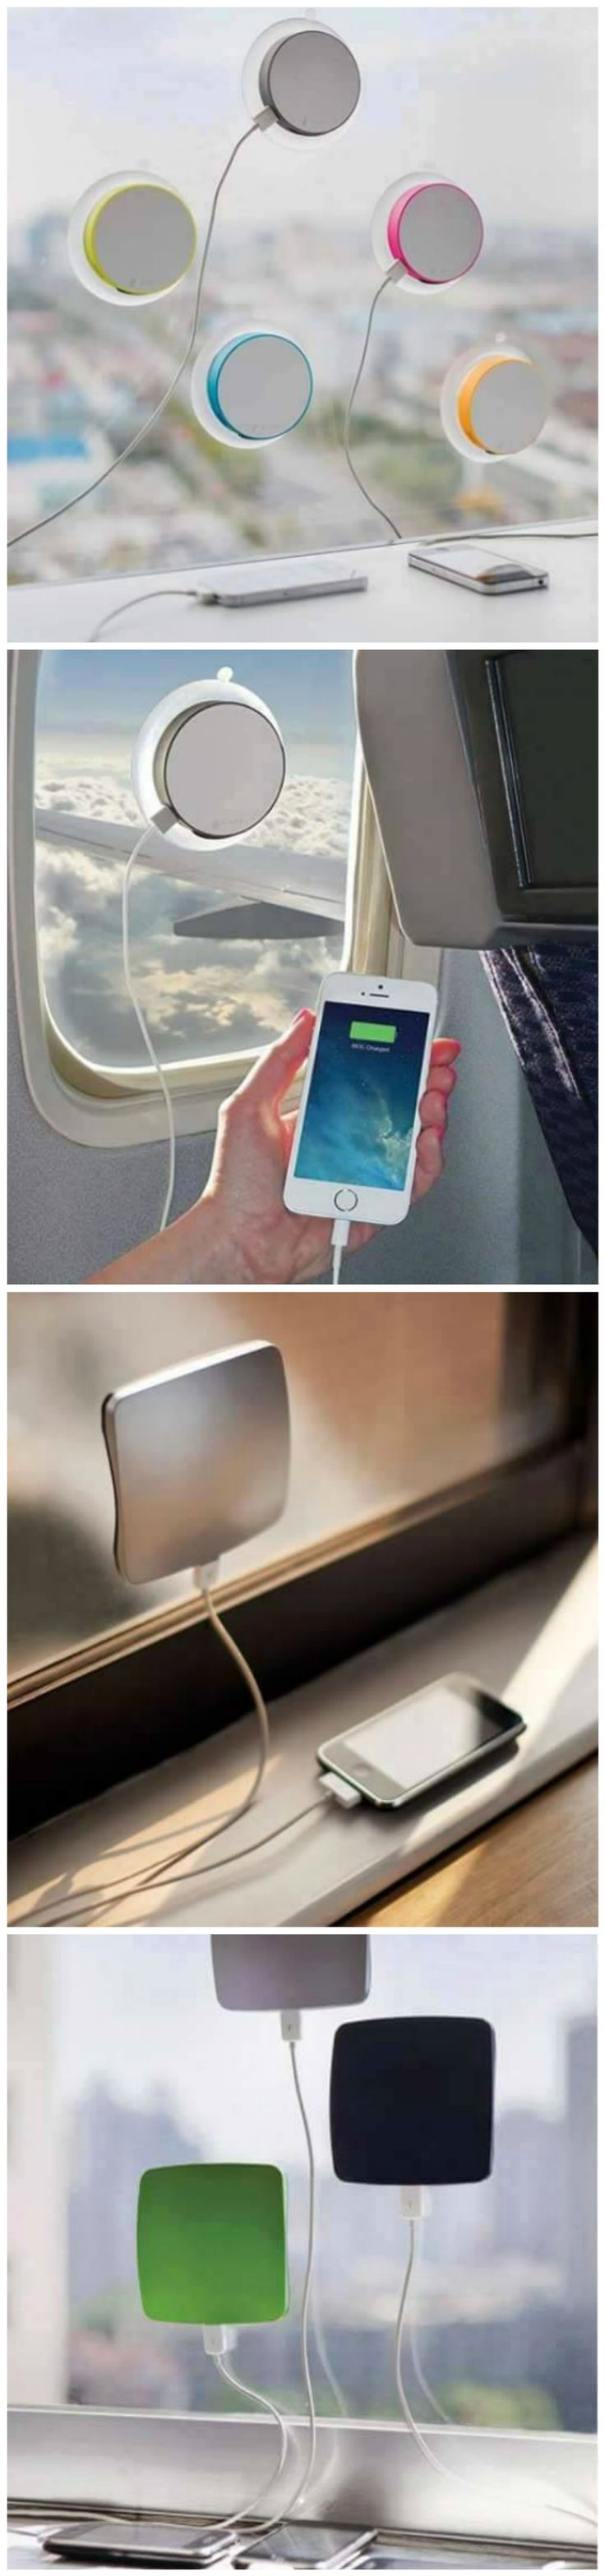 Window Mounted Solar Charger <<< äußerst praktisch... So schnell wie möglich anschaffen